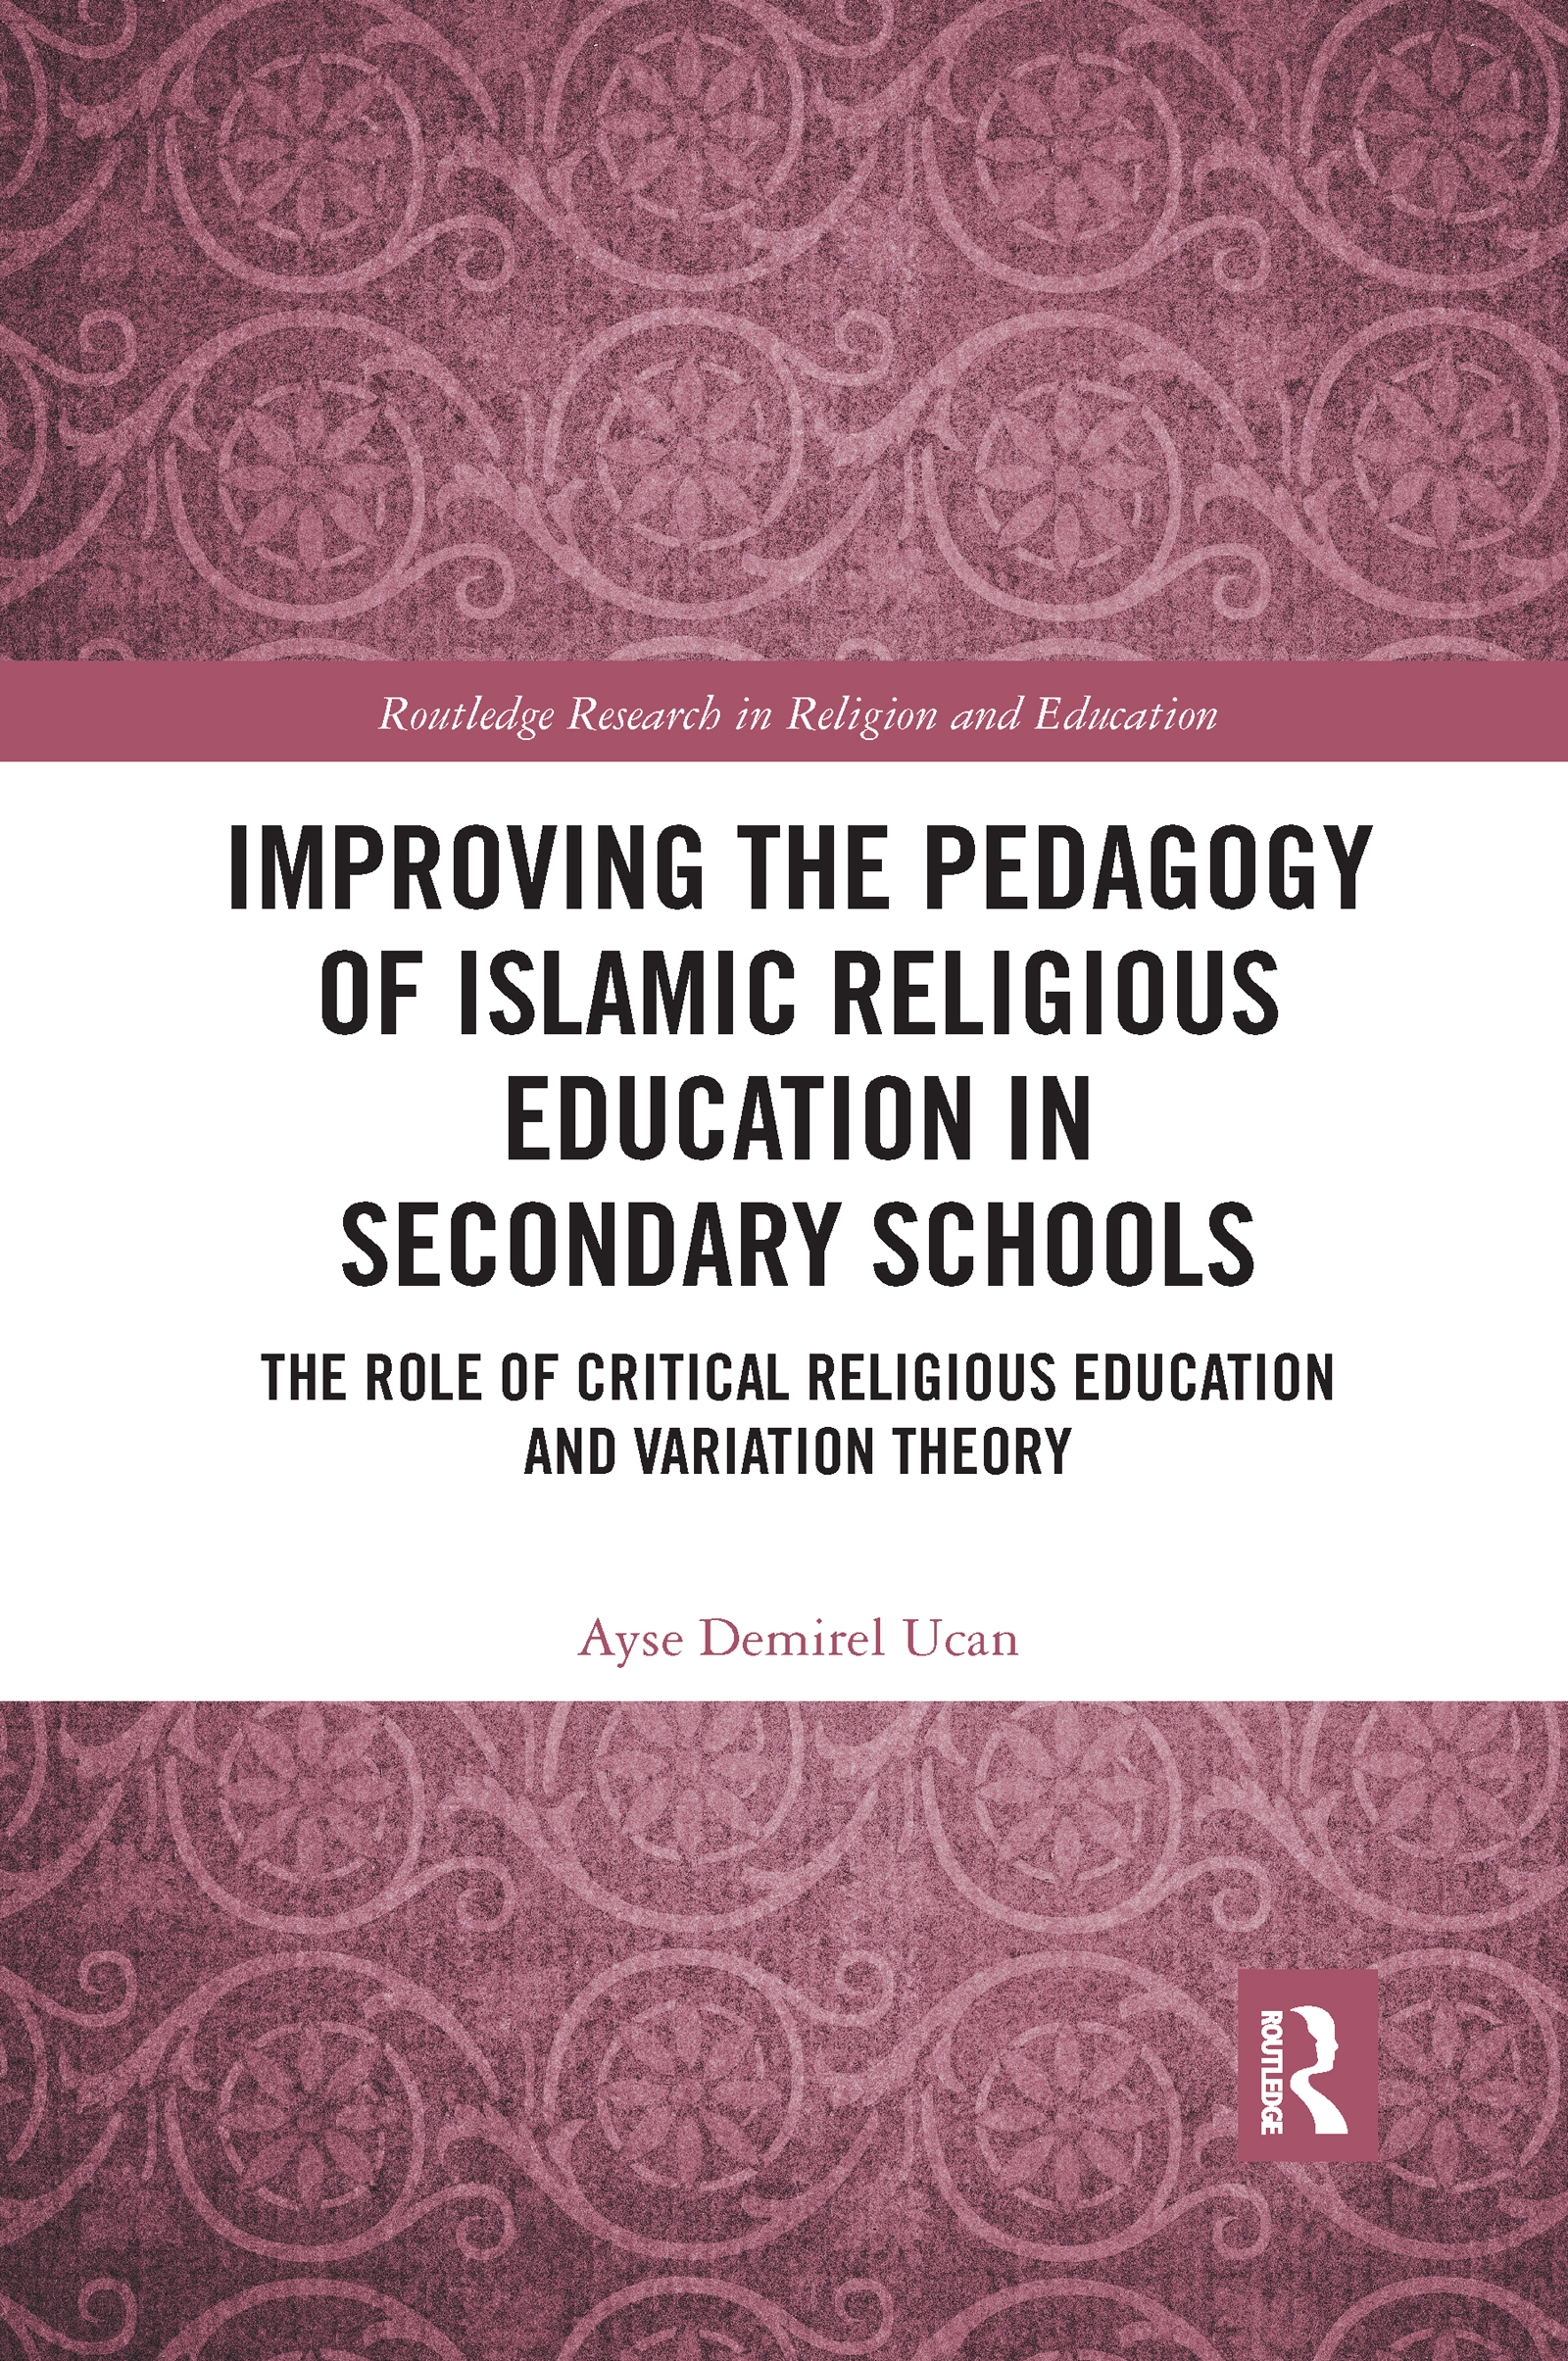 Improving the Pedagogy of Islamic Religious Education in Secondary Schools